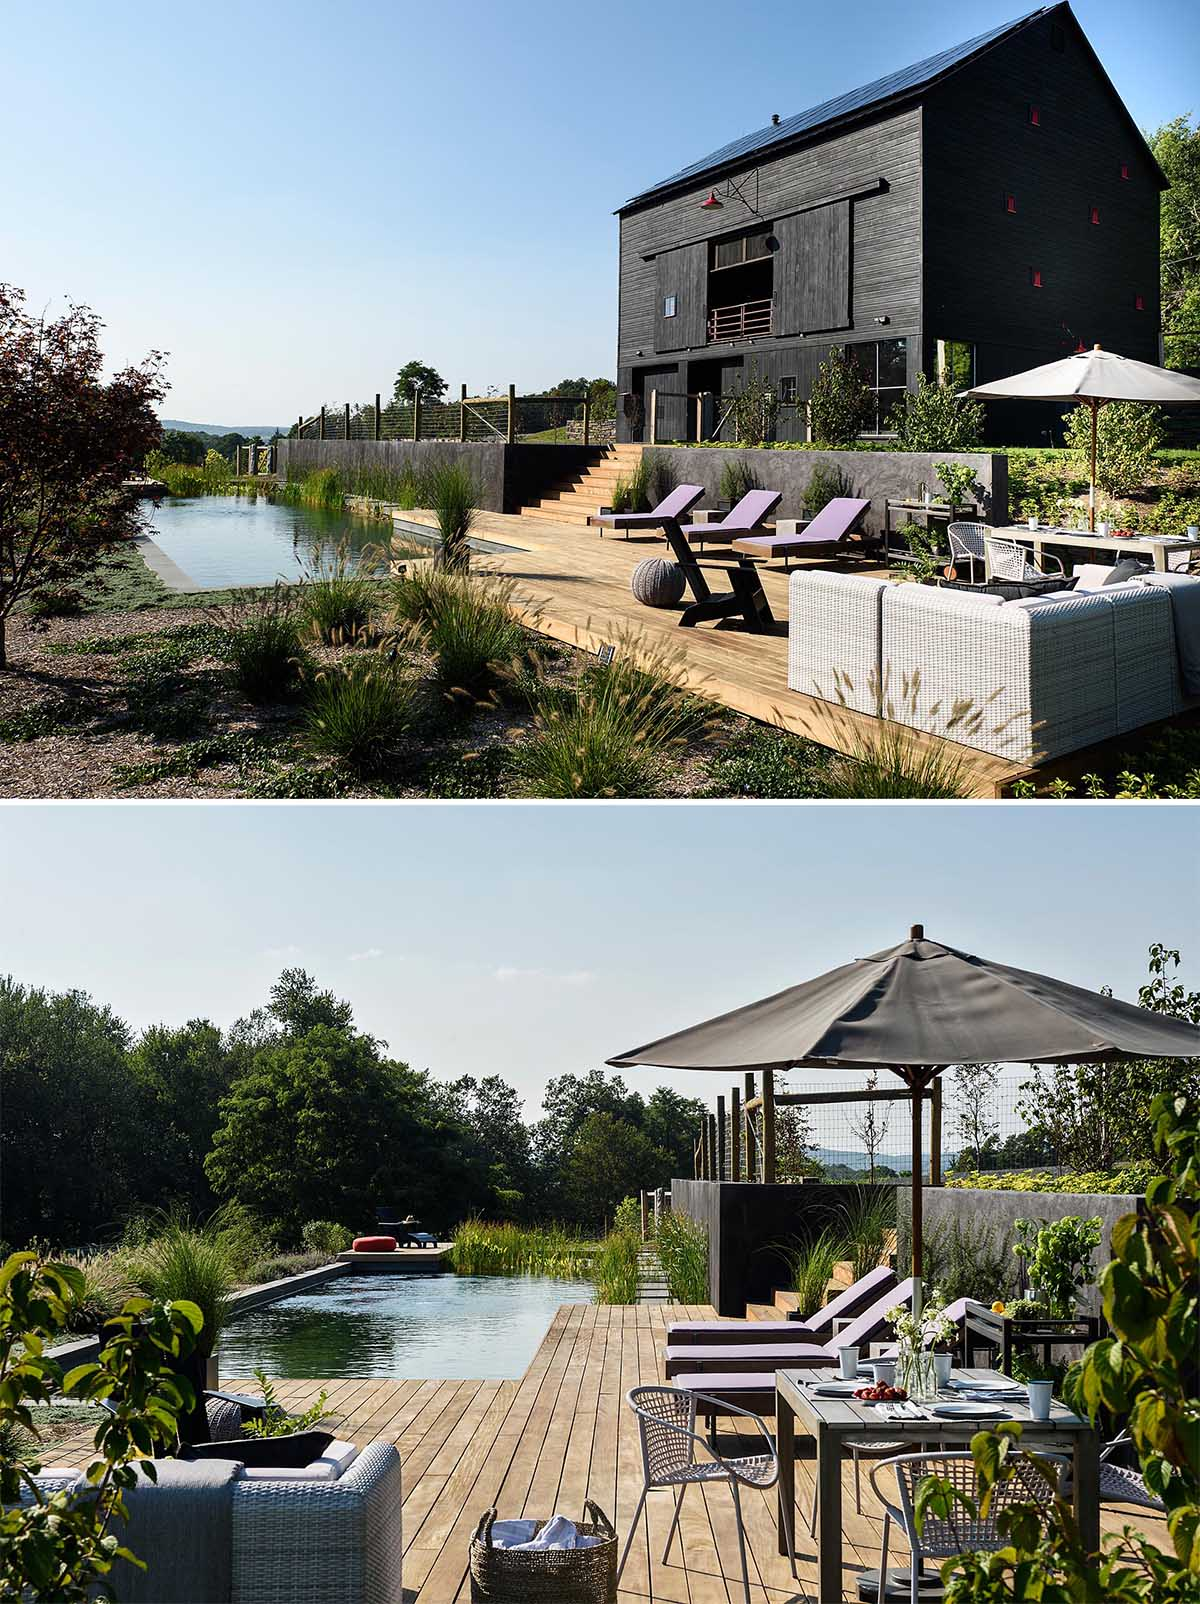 A modern black barn house with a natural swimming pool.